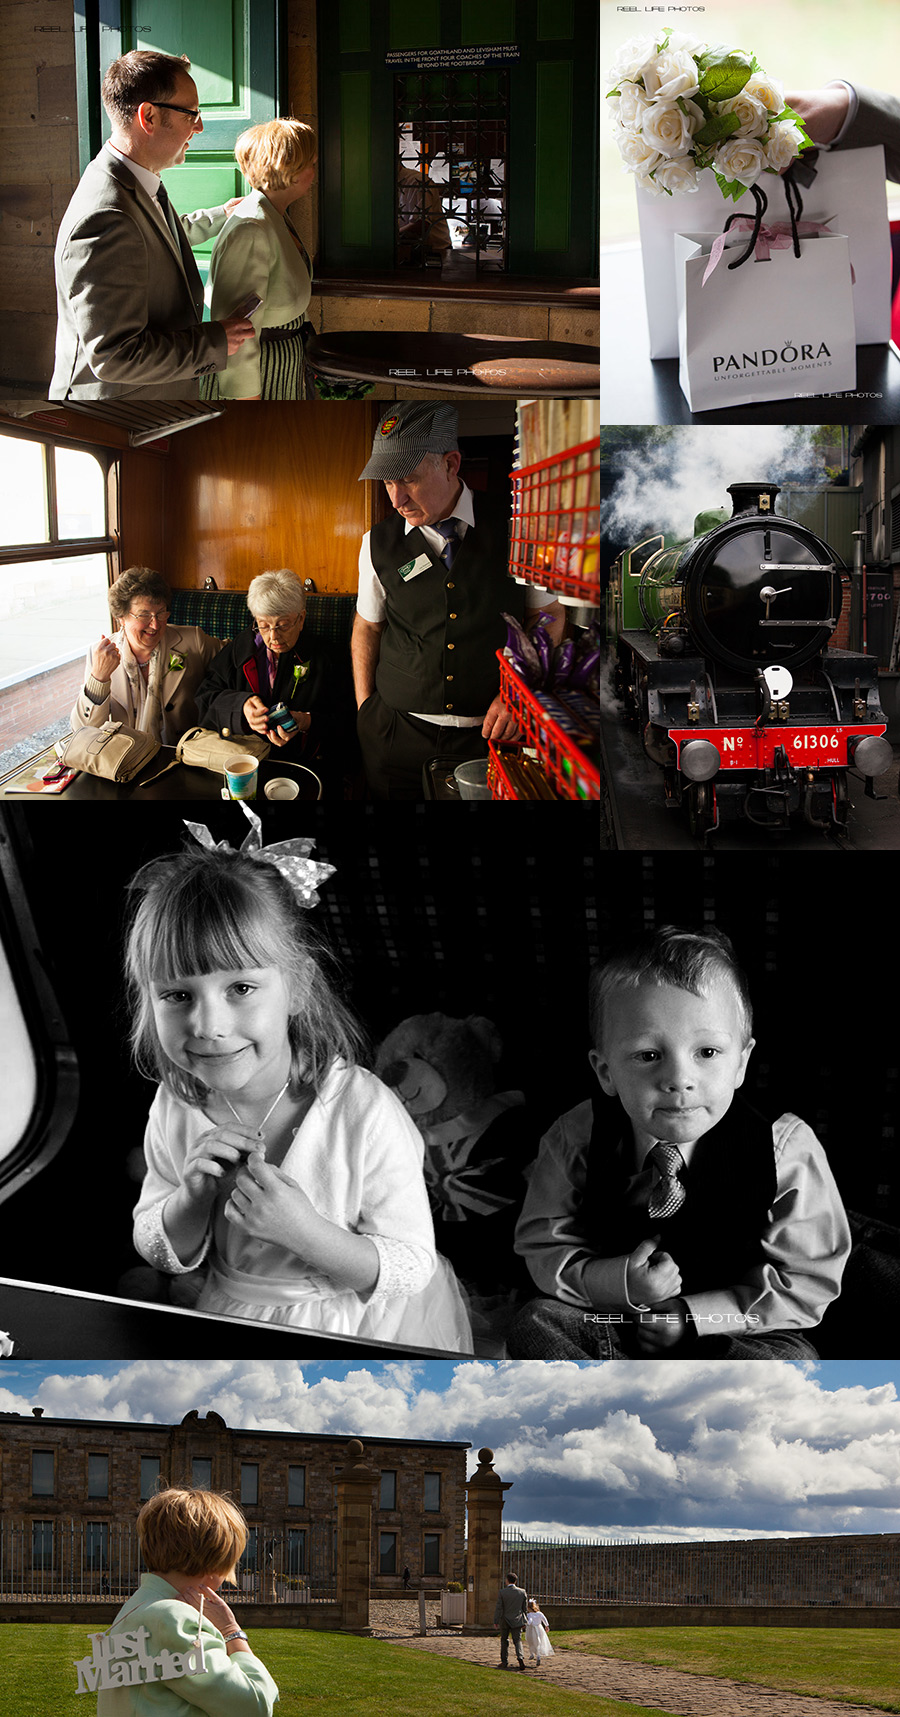 unusual wedding day with steam train trip